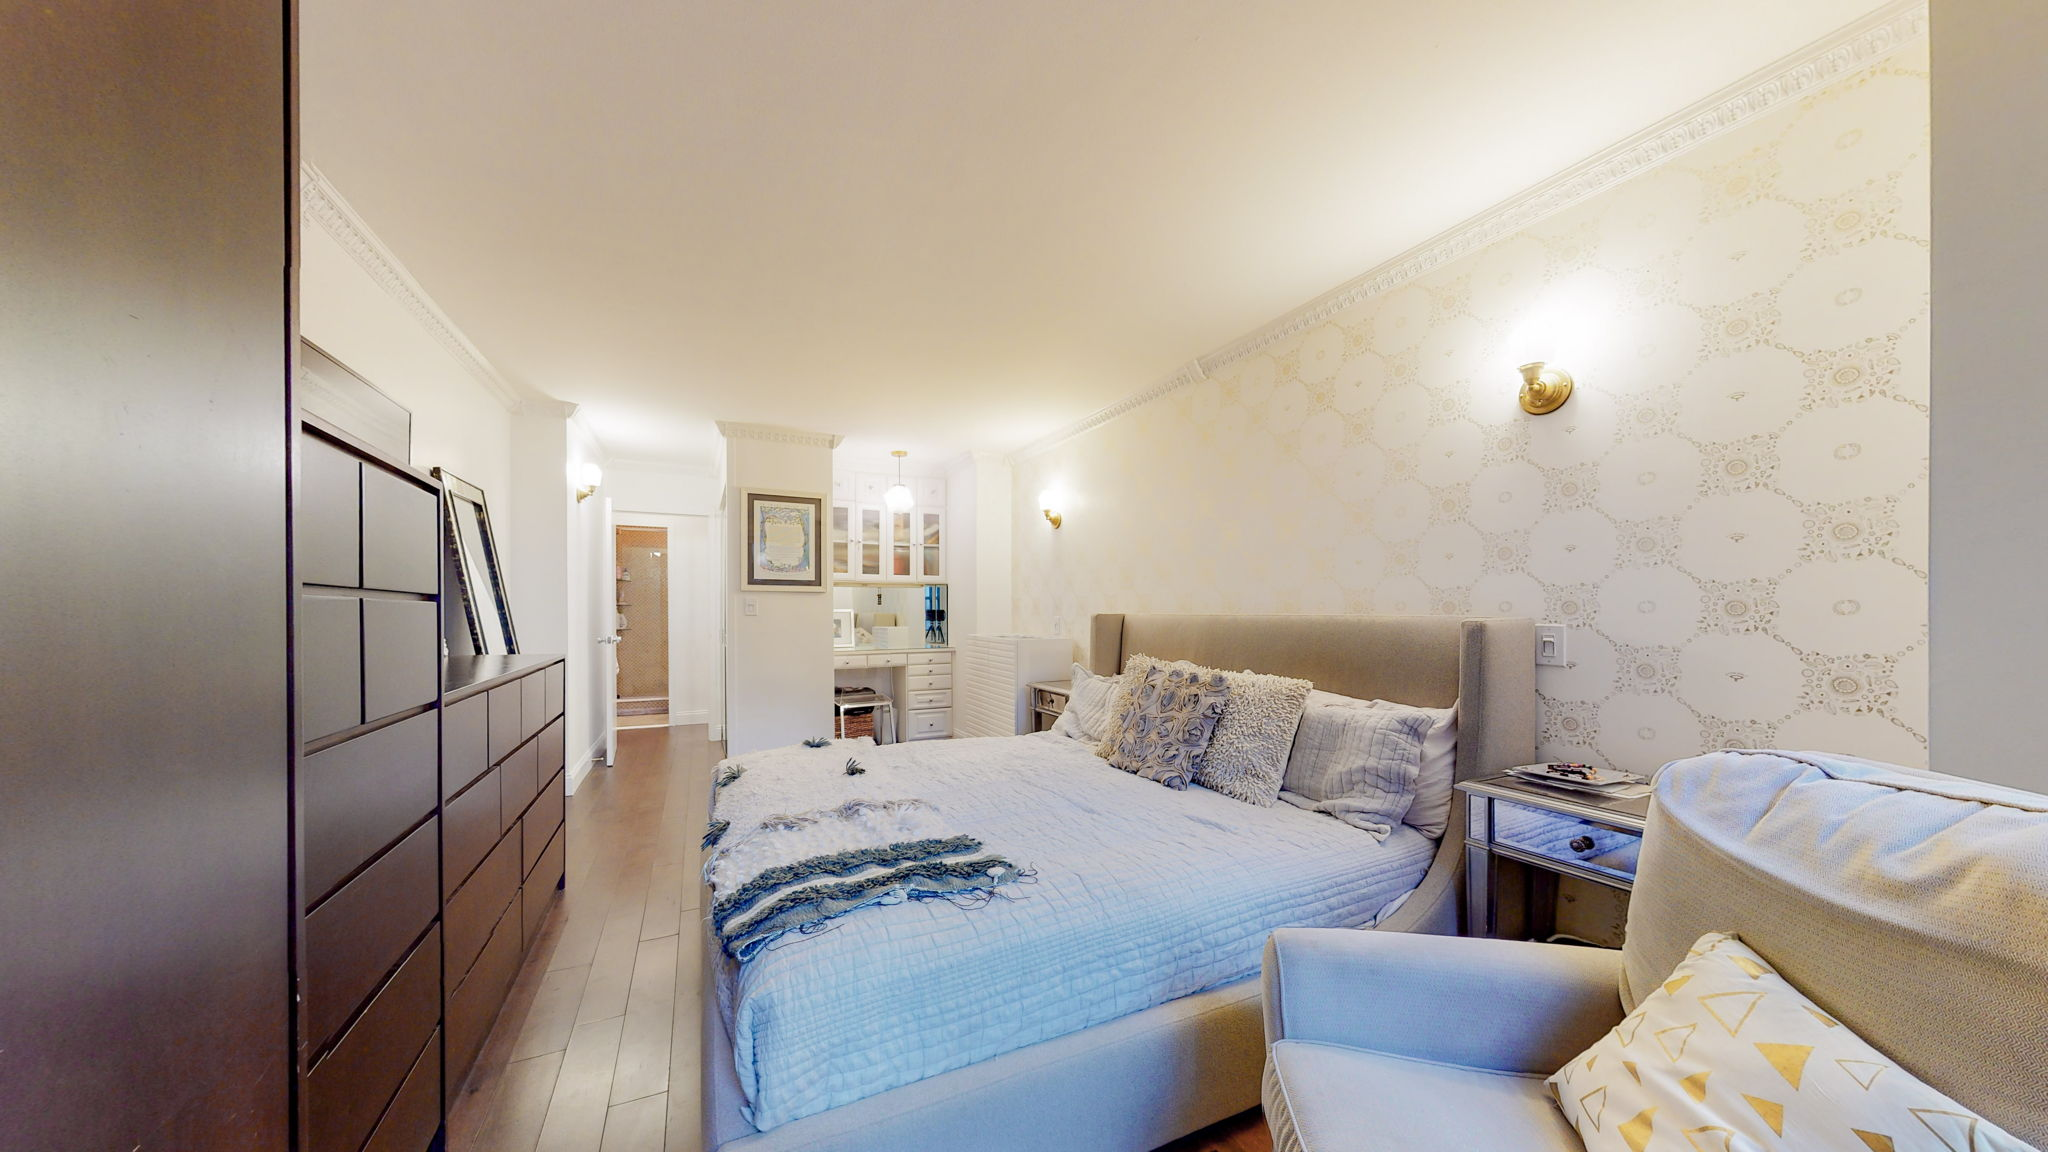 East 28th Street 201, New York, New York, New York, United States 10016, 2 Bedrooms Bedrooms, ,1 BathroomBathrooms,Co-op,FOR SALE,The Chesapeake House,201,1149